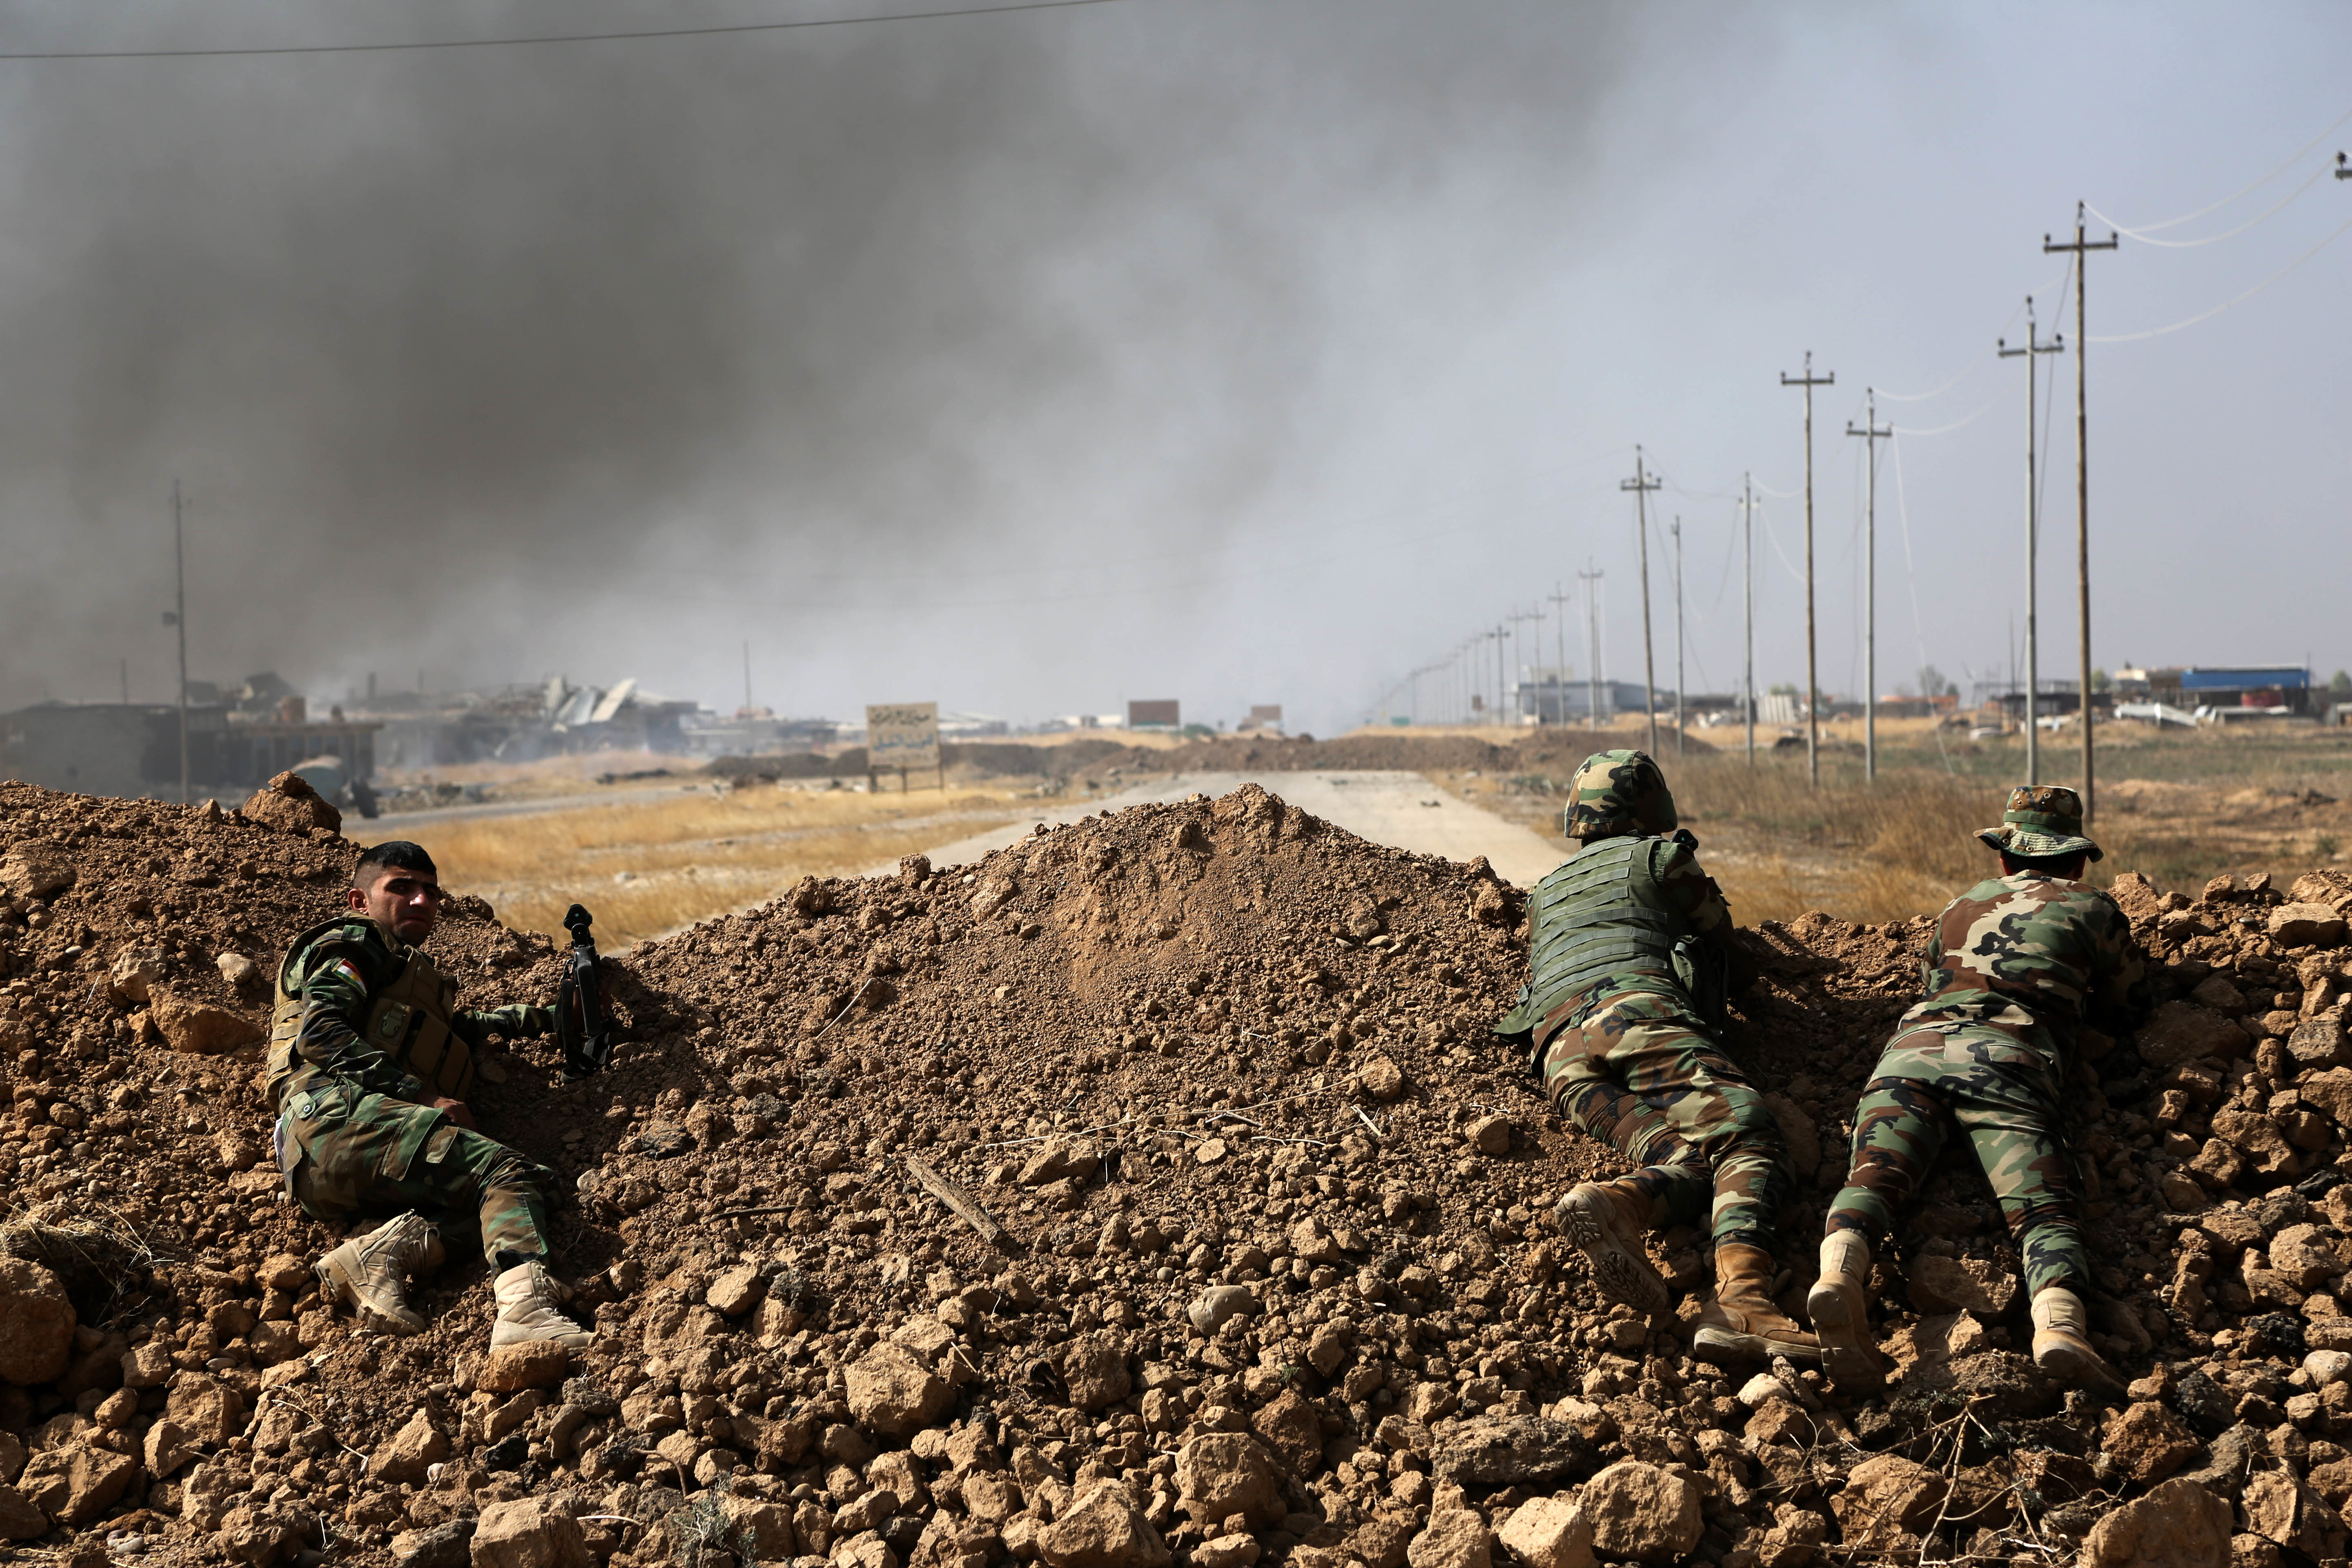 Kurdish security forces take up a position as they fight overlooking the Islamic State-controlled in villages surrounding Mosul, in Khazer, about 30 kilometers (19 miles) east of Mosul, Iraq, Oct. 17, 2016.